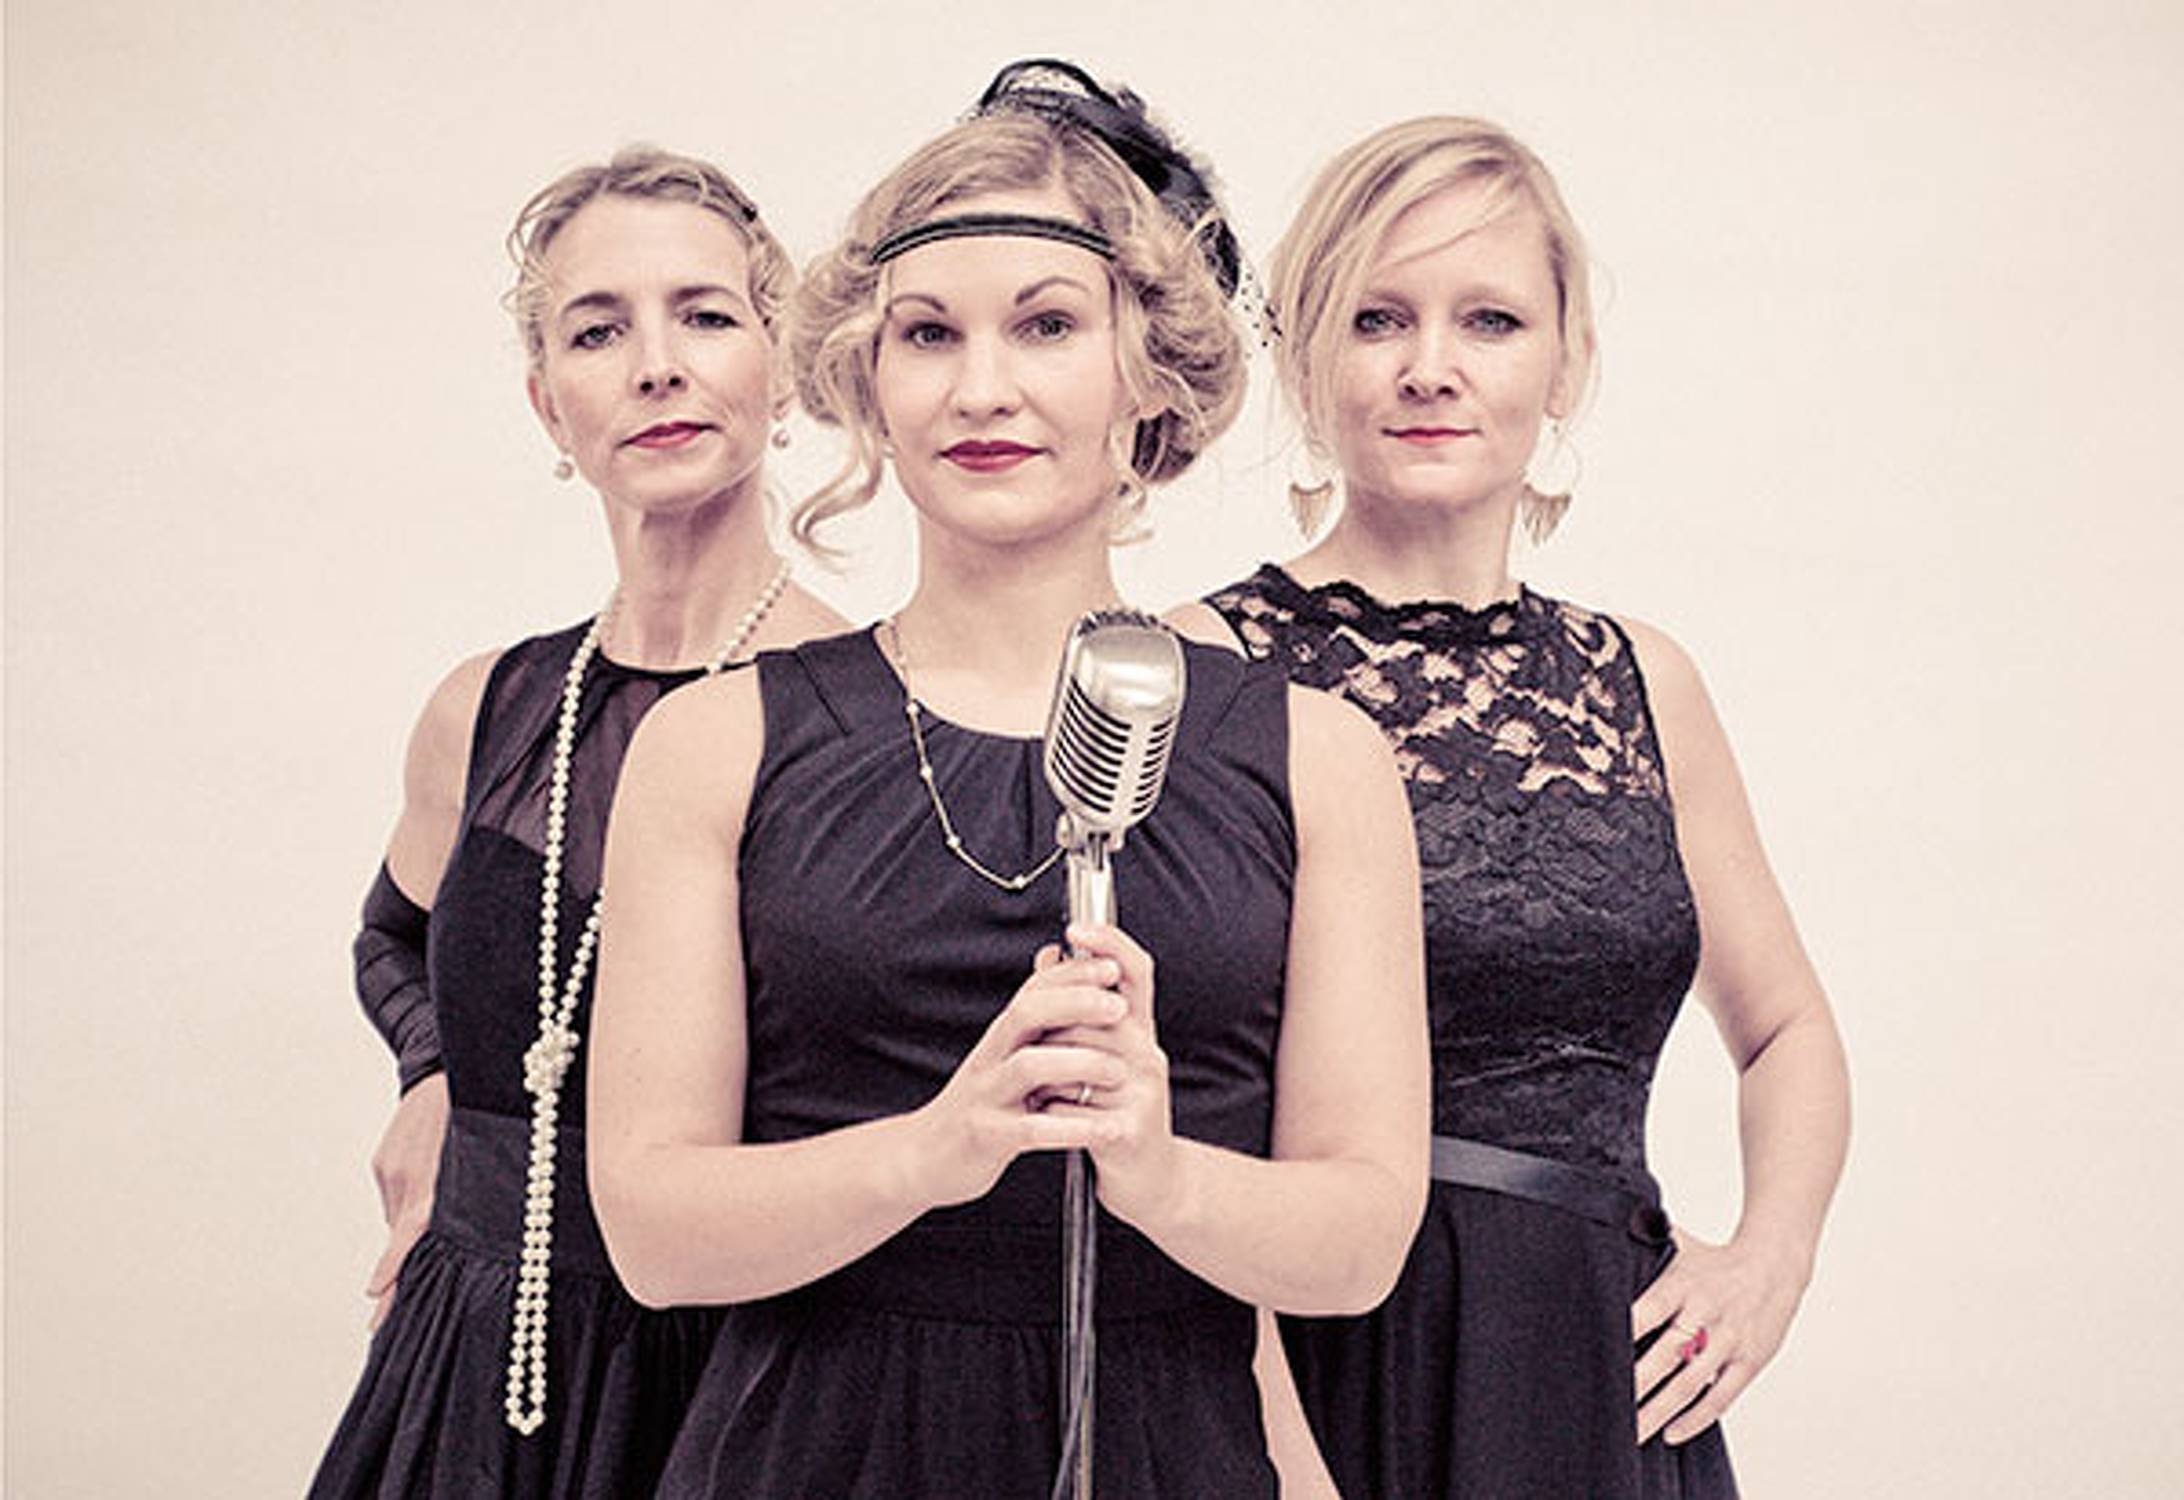 Ladies Swing-Band - MyLadySwing - Künstler-Collection